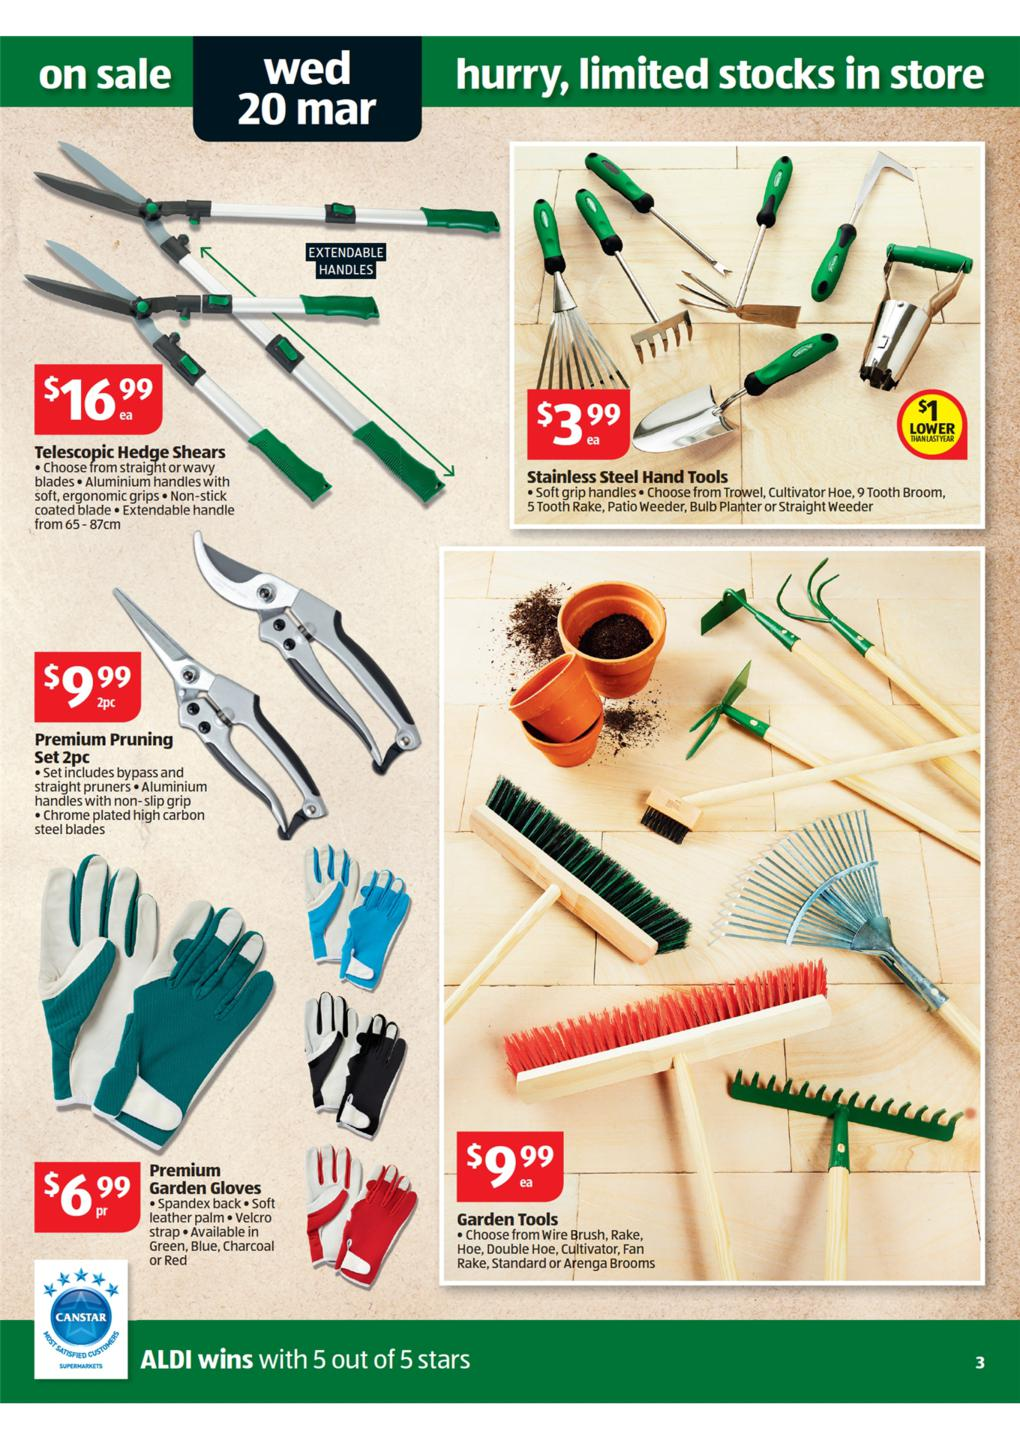 Aldi catalogue special buys week 12 2013 page 3 for Aldi gardening tools 2016